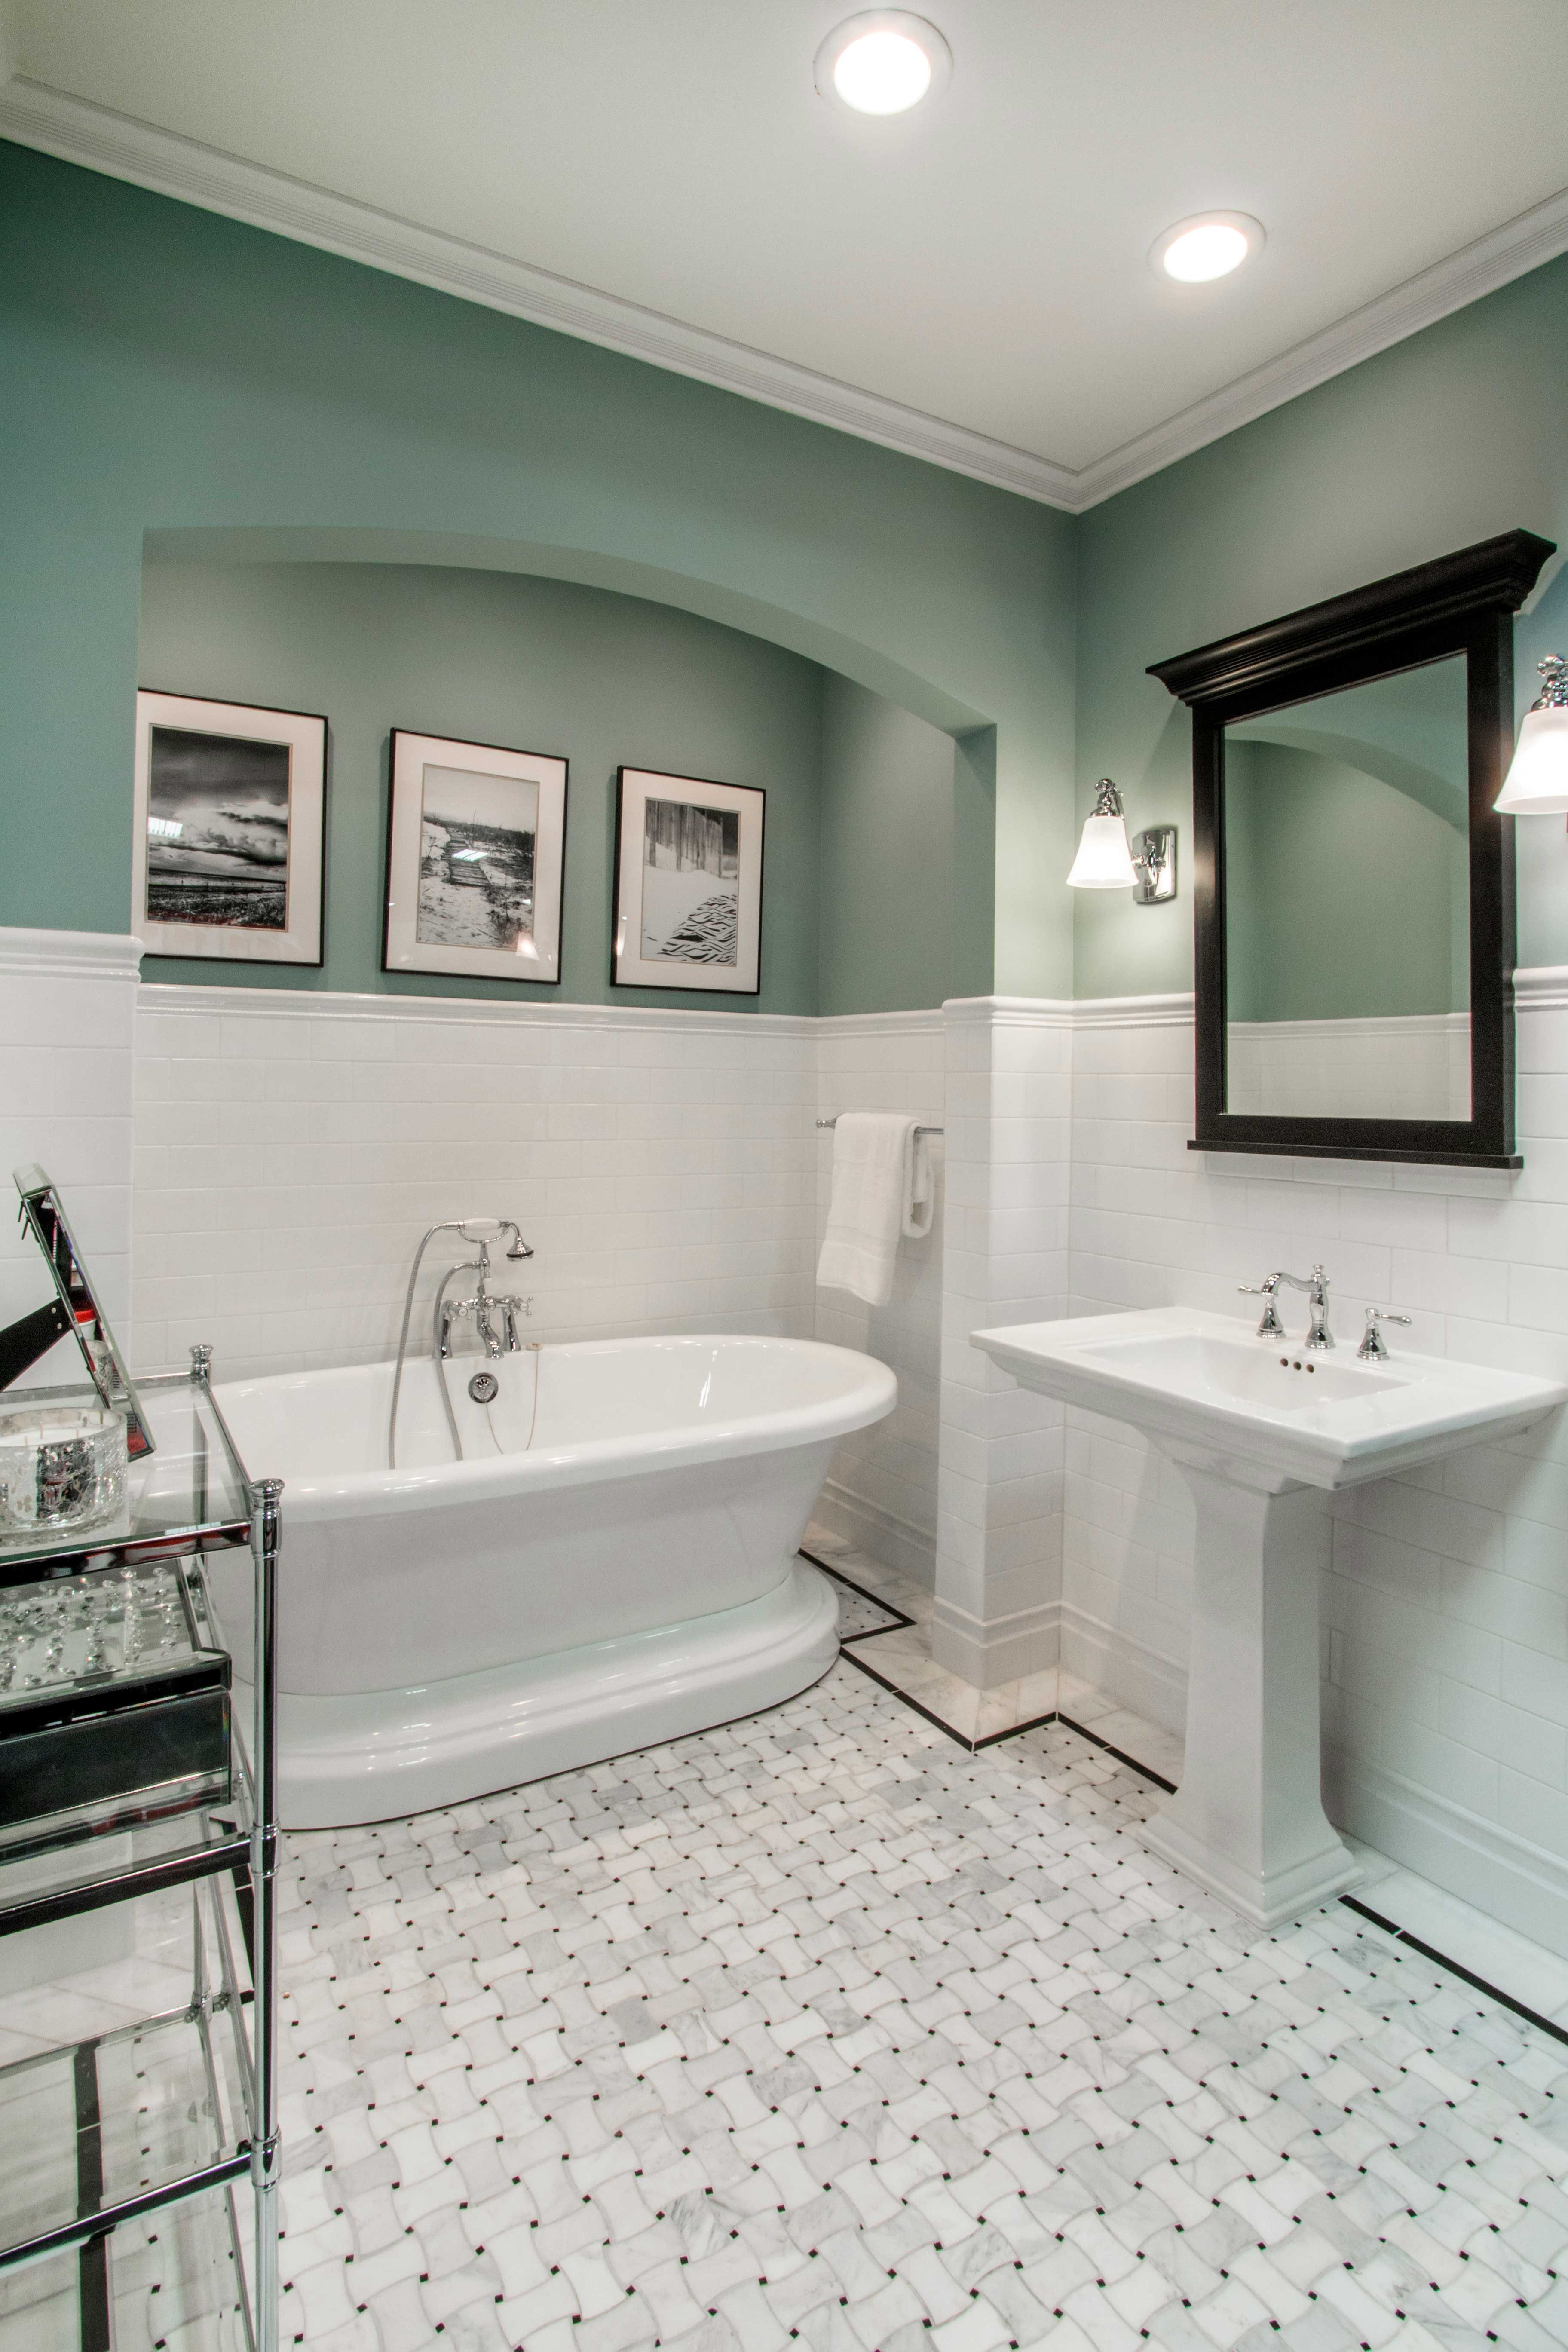 10x10 Bathroom: White, Elegant Bathroom Tile